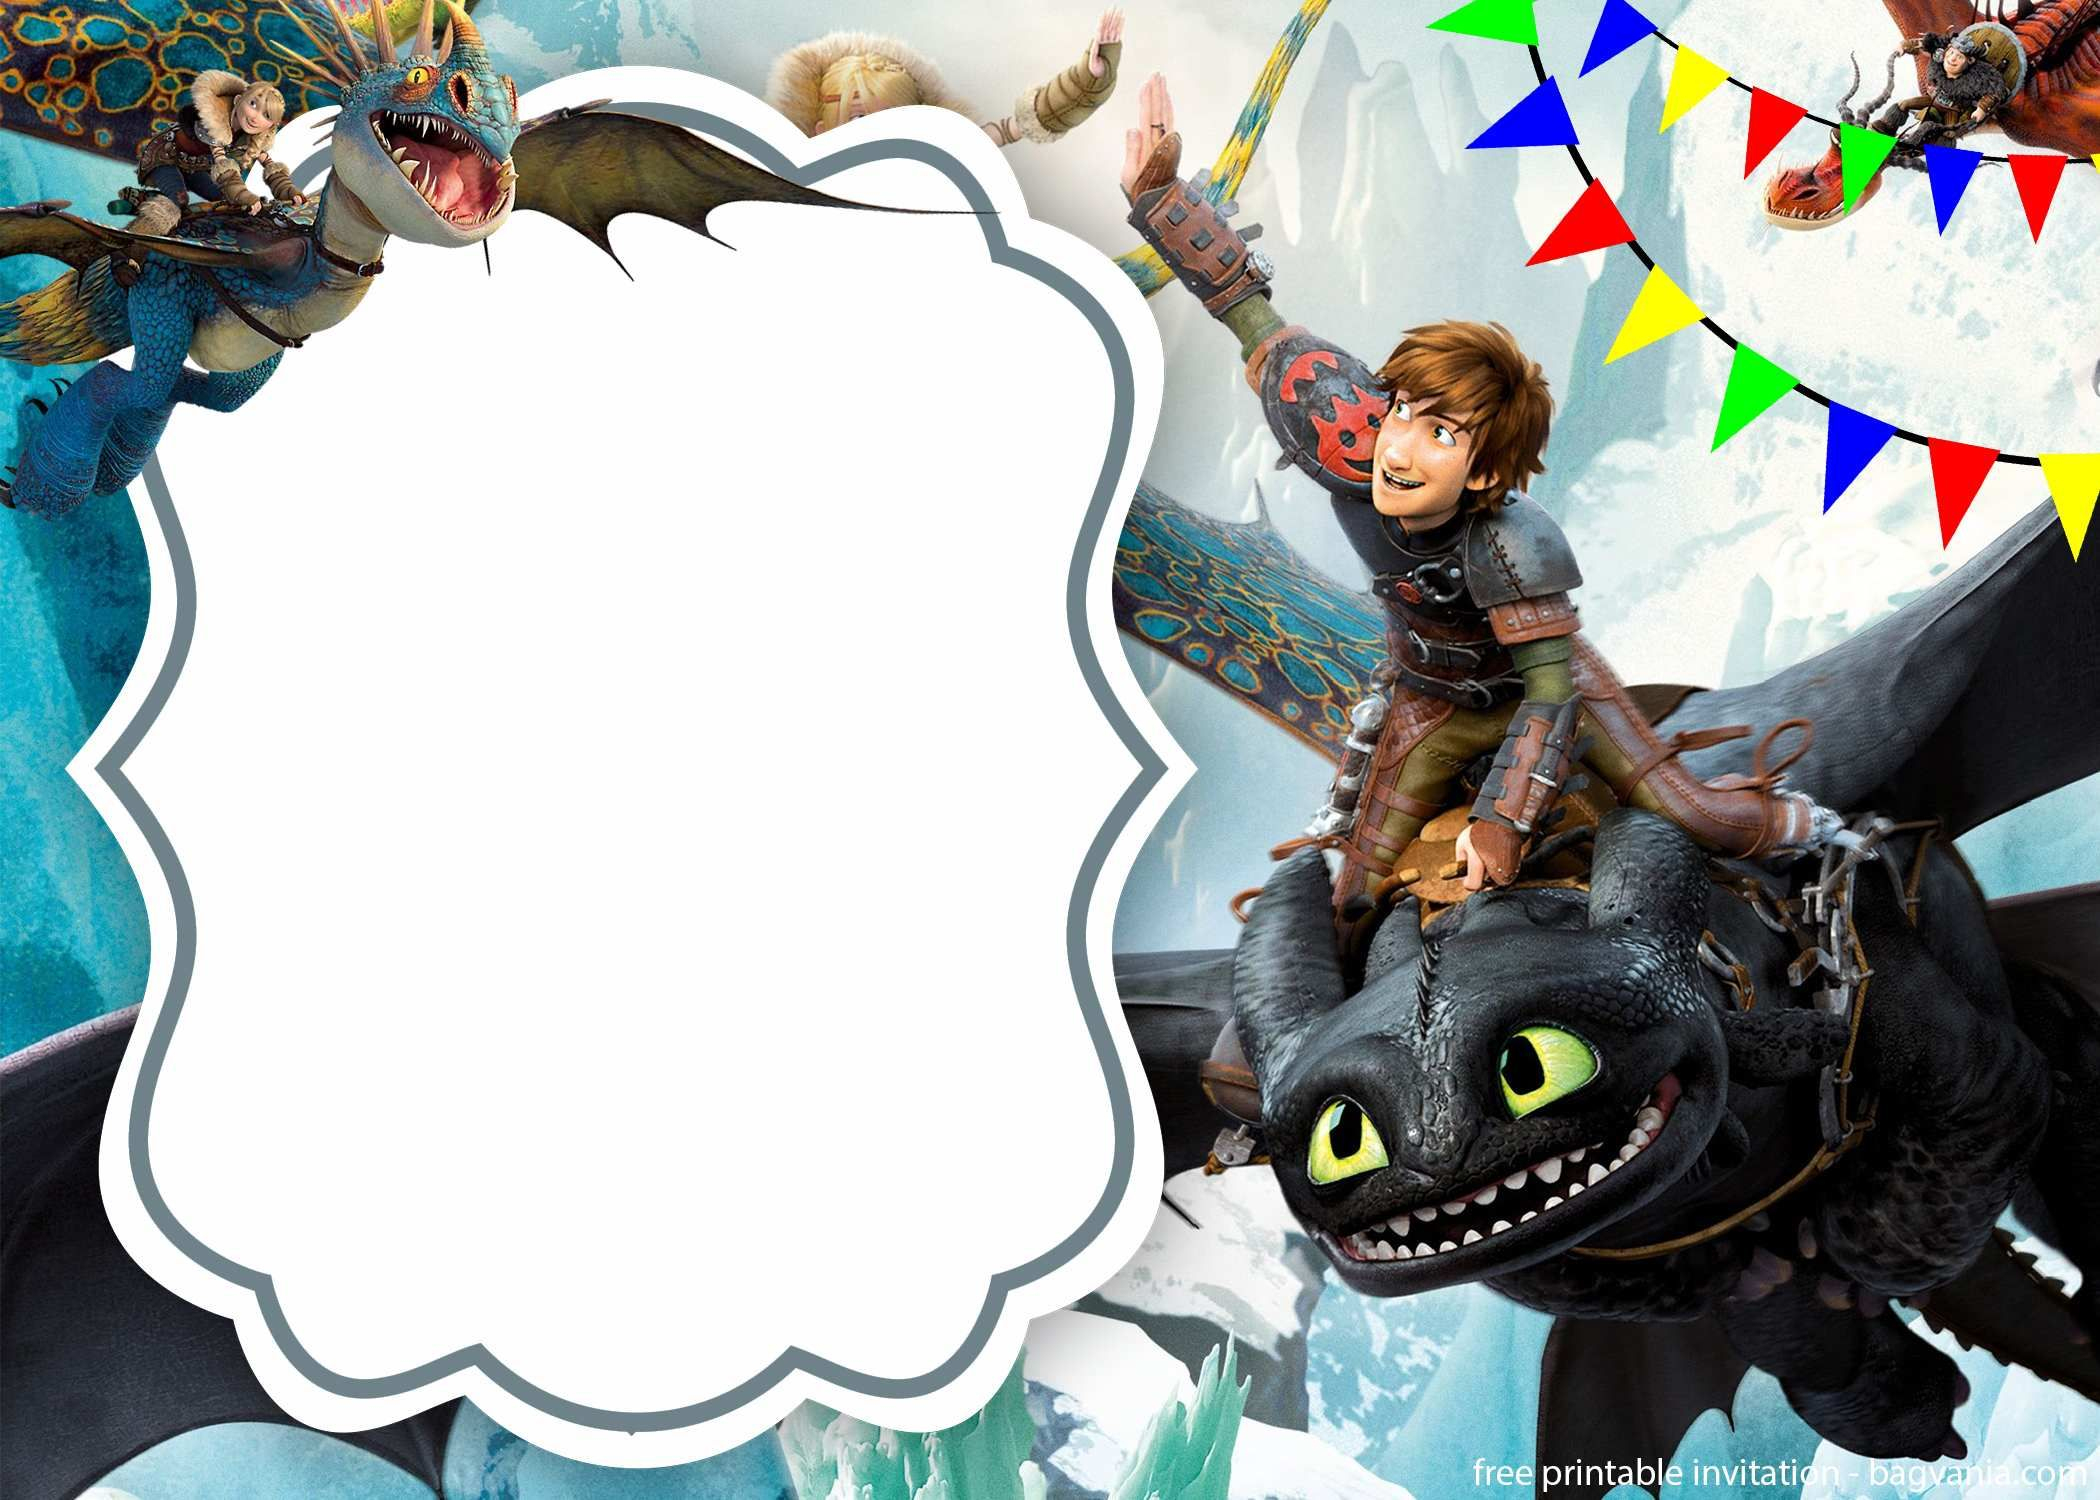 Free Download How To Train Your Dragon Invitation | Bagvania - How To Train Your Dragon Birthday Invitations Printable Free